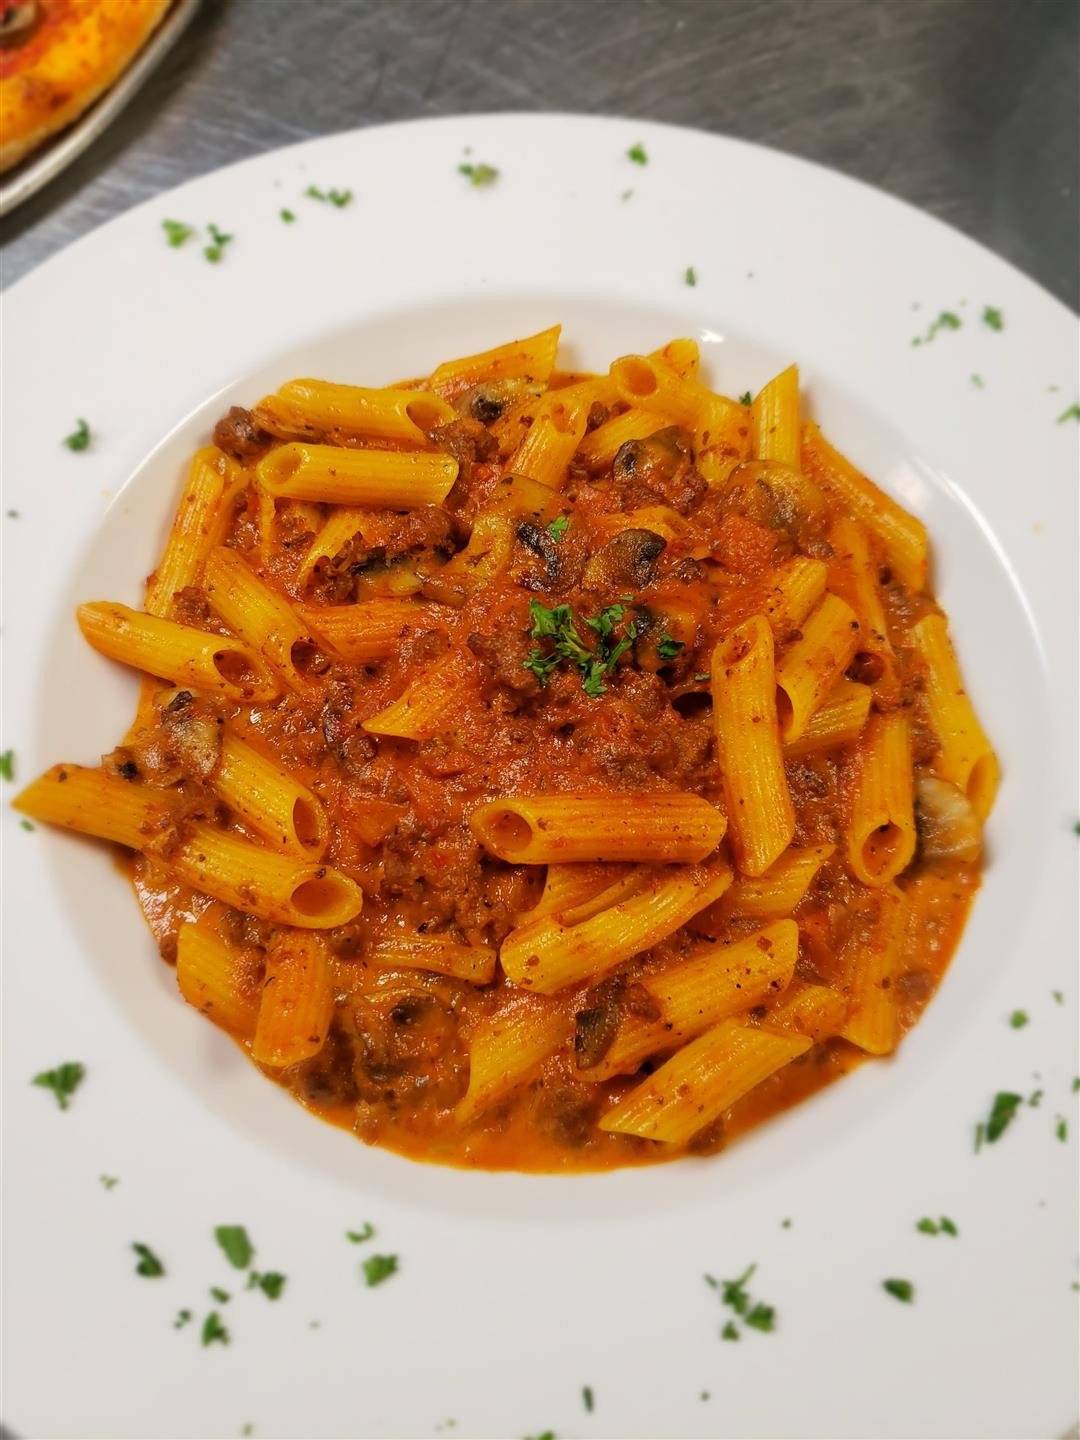 Rigatoni della nonna with meat sauce in a bowl